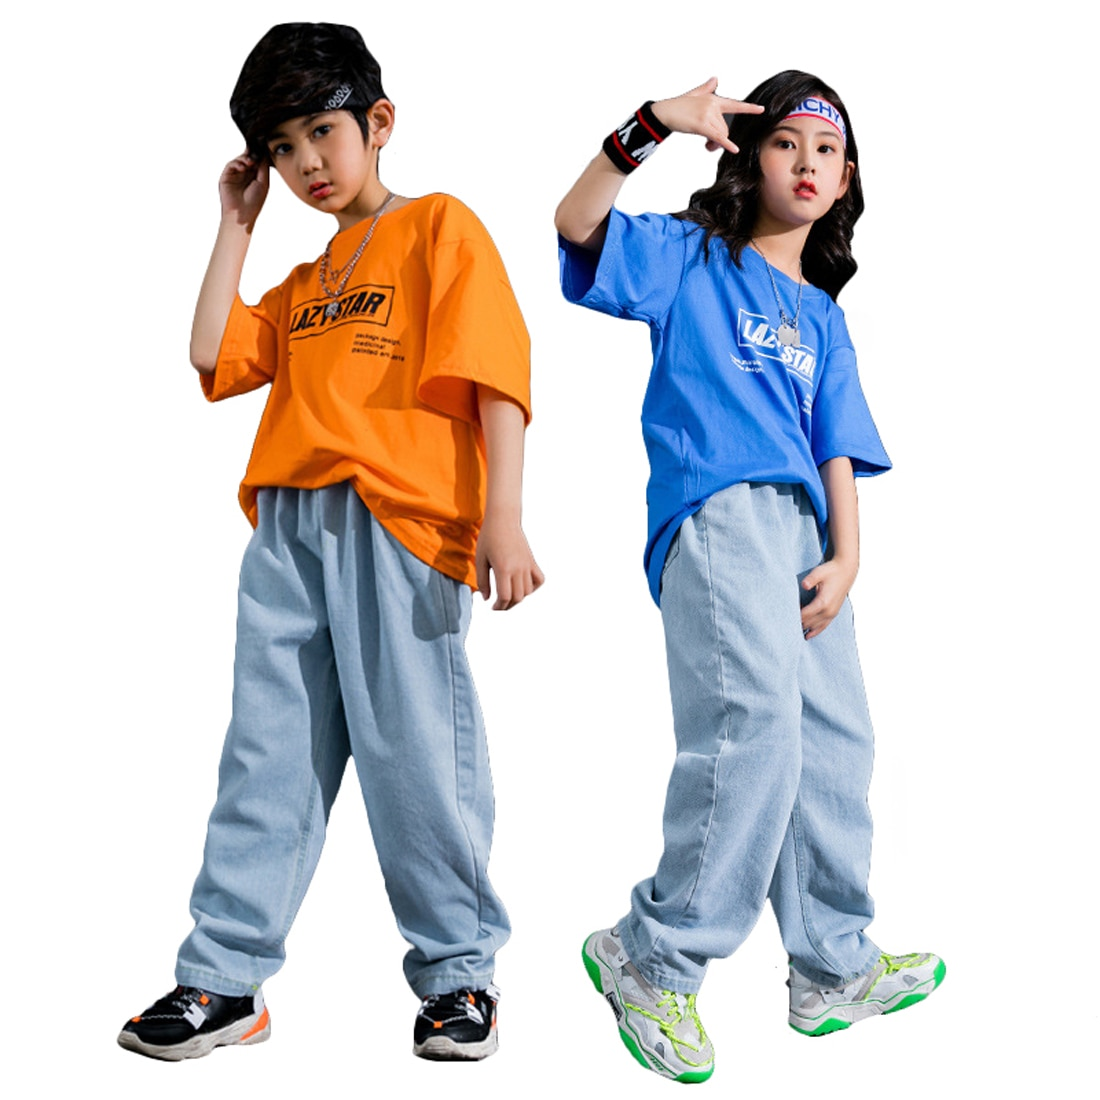 Lolanta Boys Girls Casual Daily Clothes T-shirt Or Jeans Clothes Hip Hop Streetwear Performance Dance Clothing